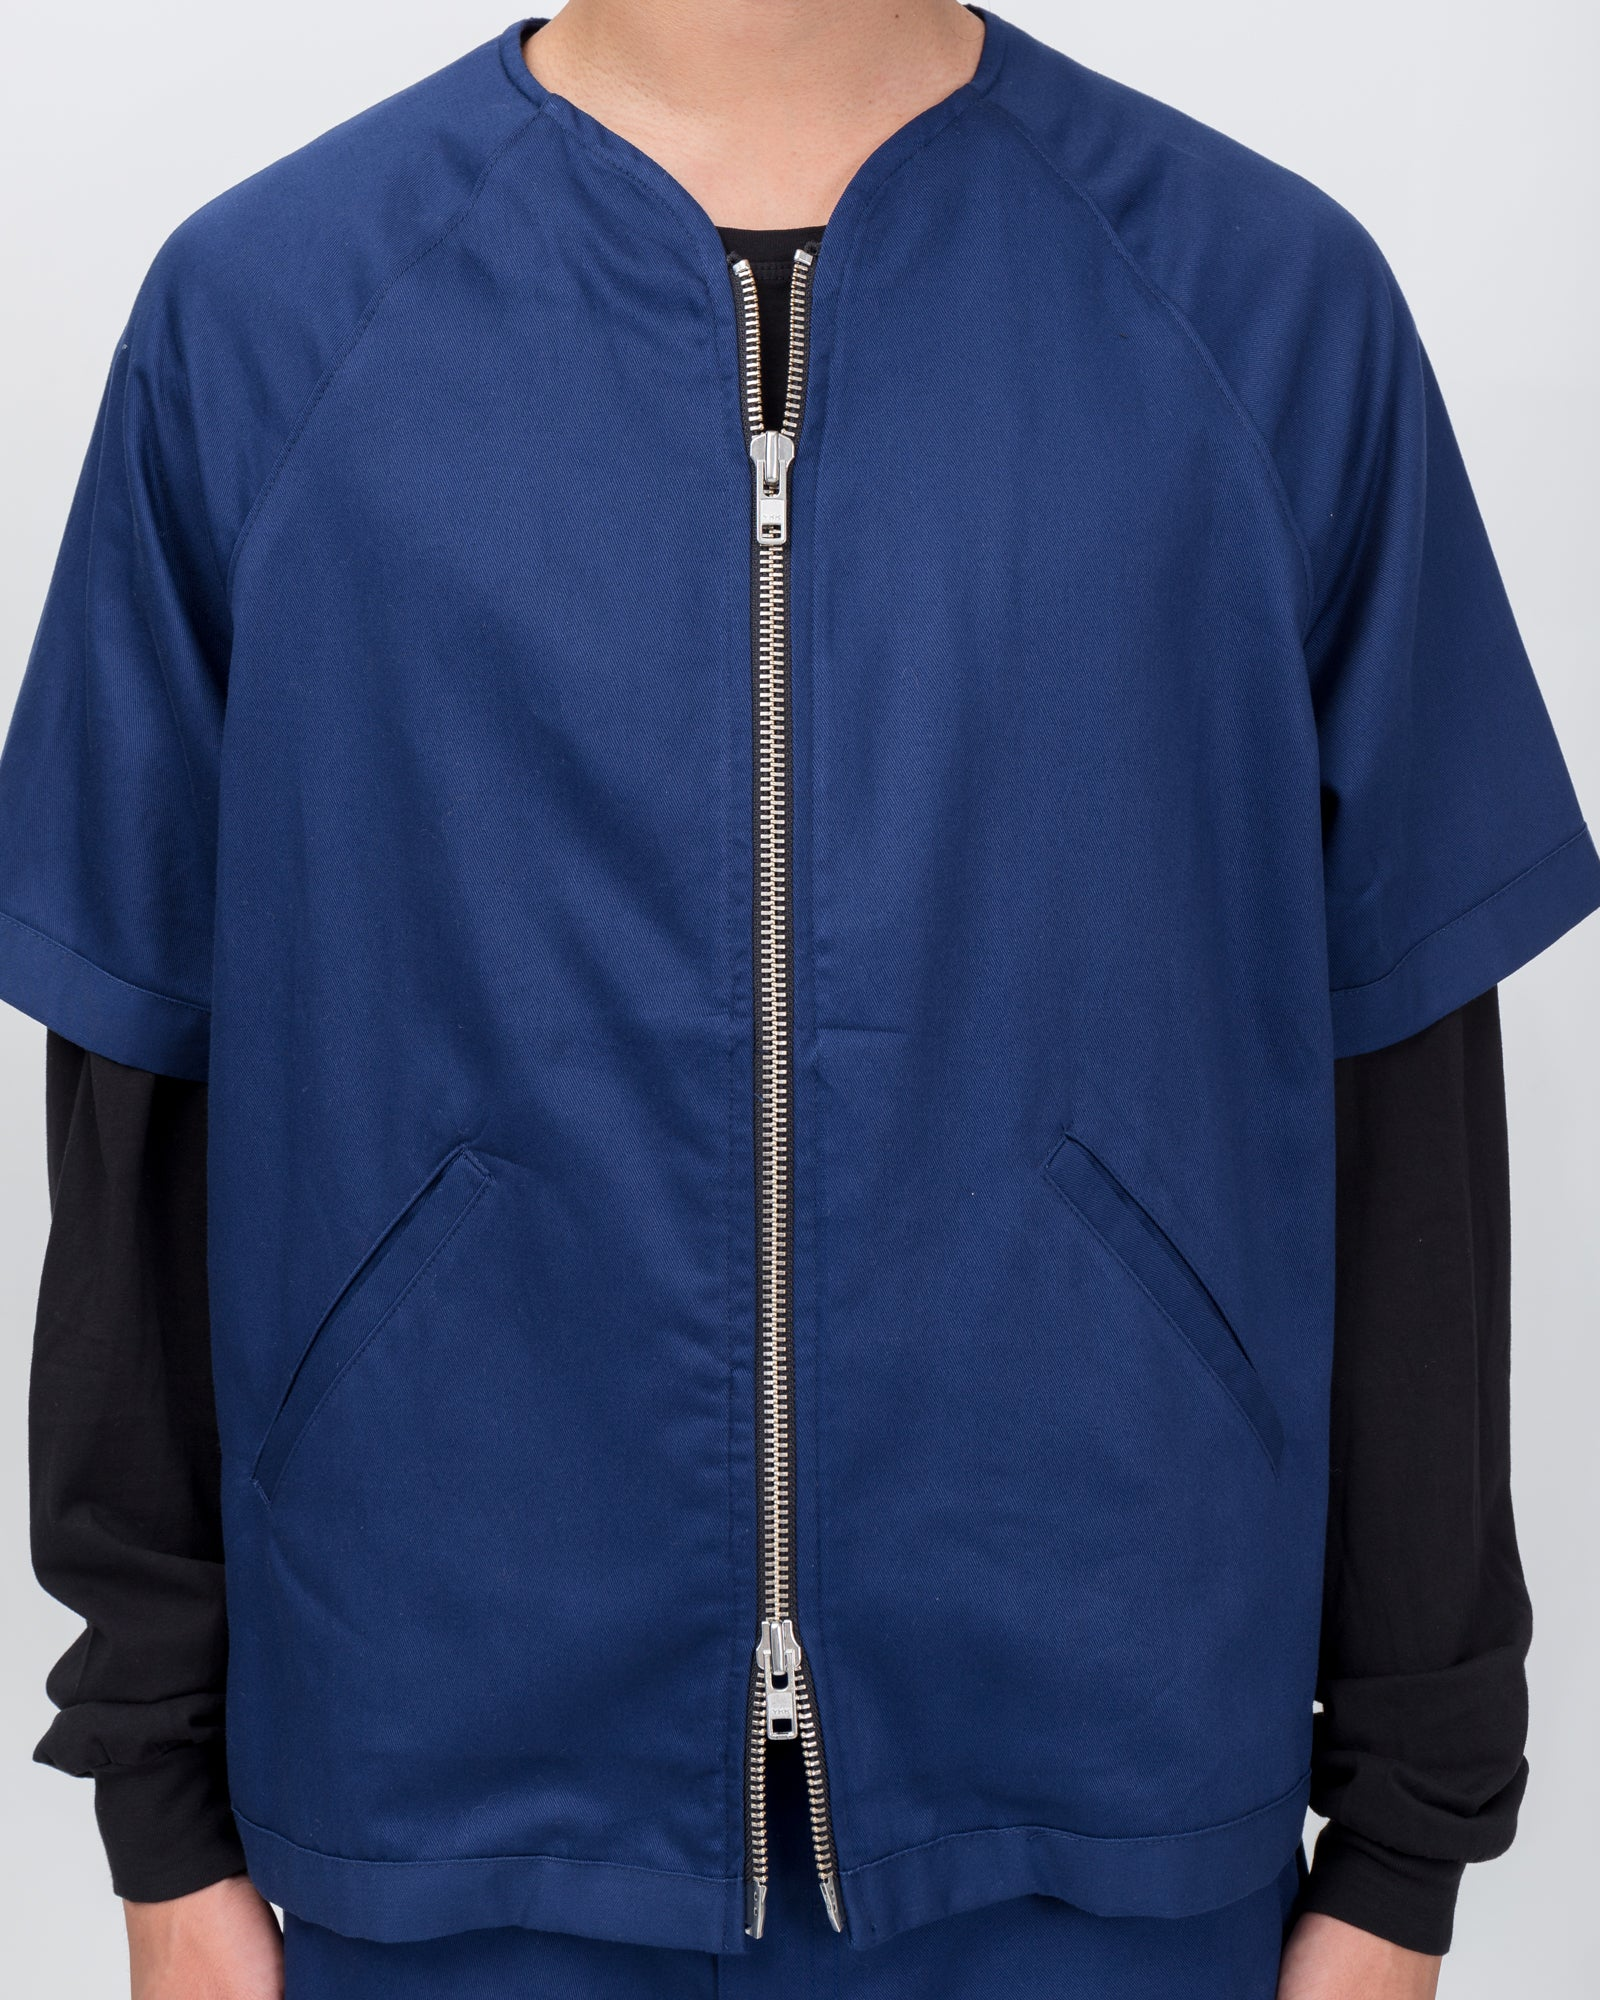 Off Track Jacket in Navy